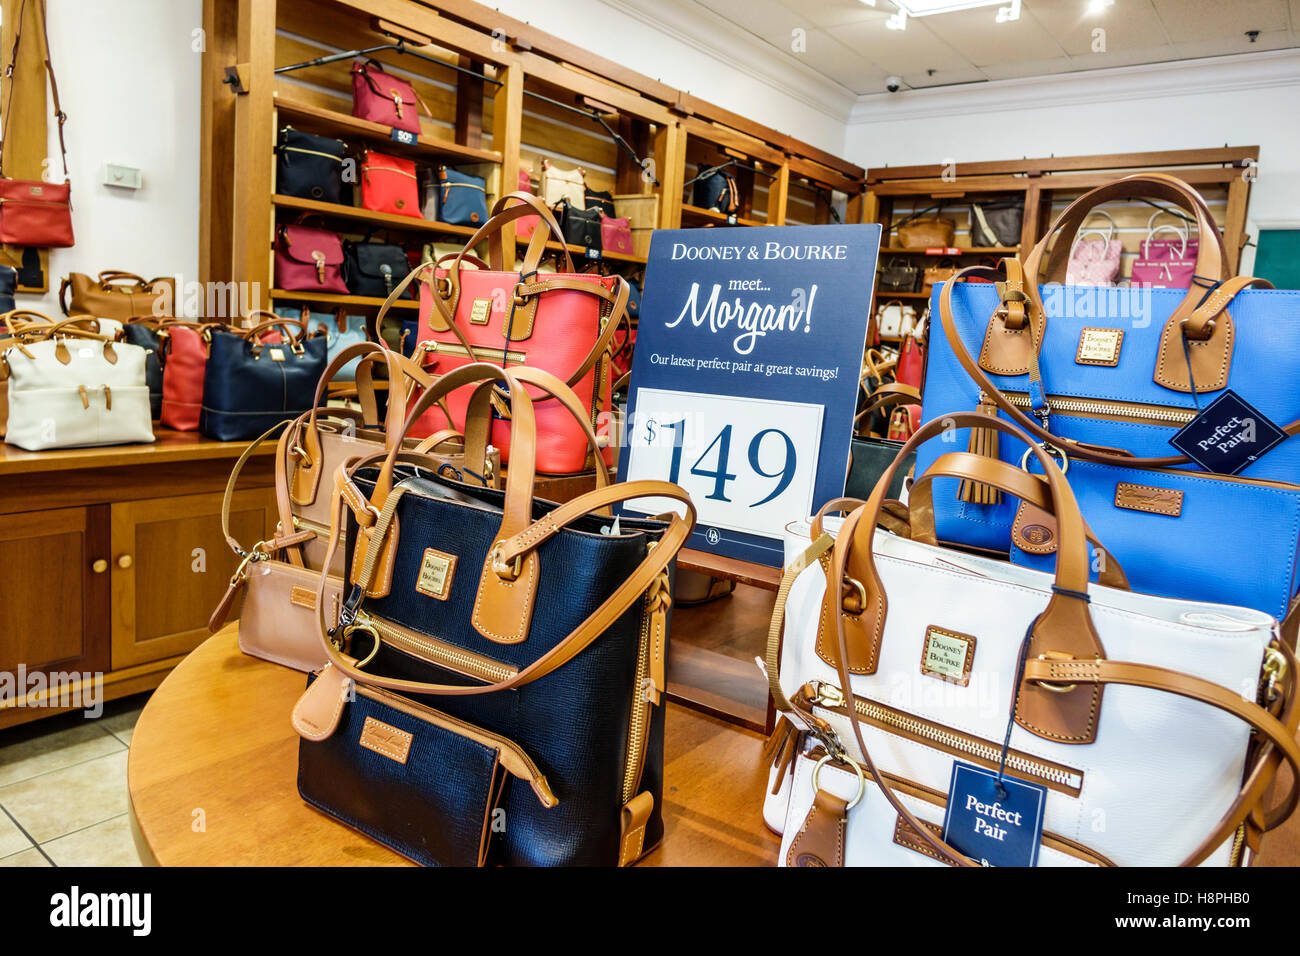 a2dc3d6a7ba Vero Beach Florida shopping Dooney & Bourke interior sale display women's  handbags Morgan